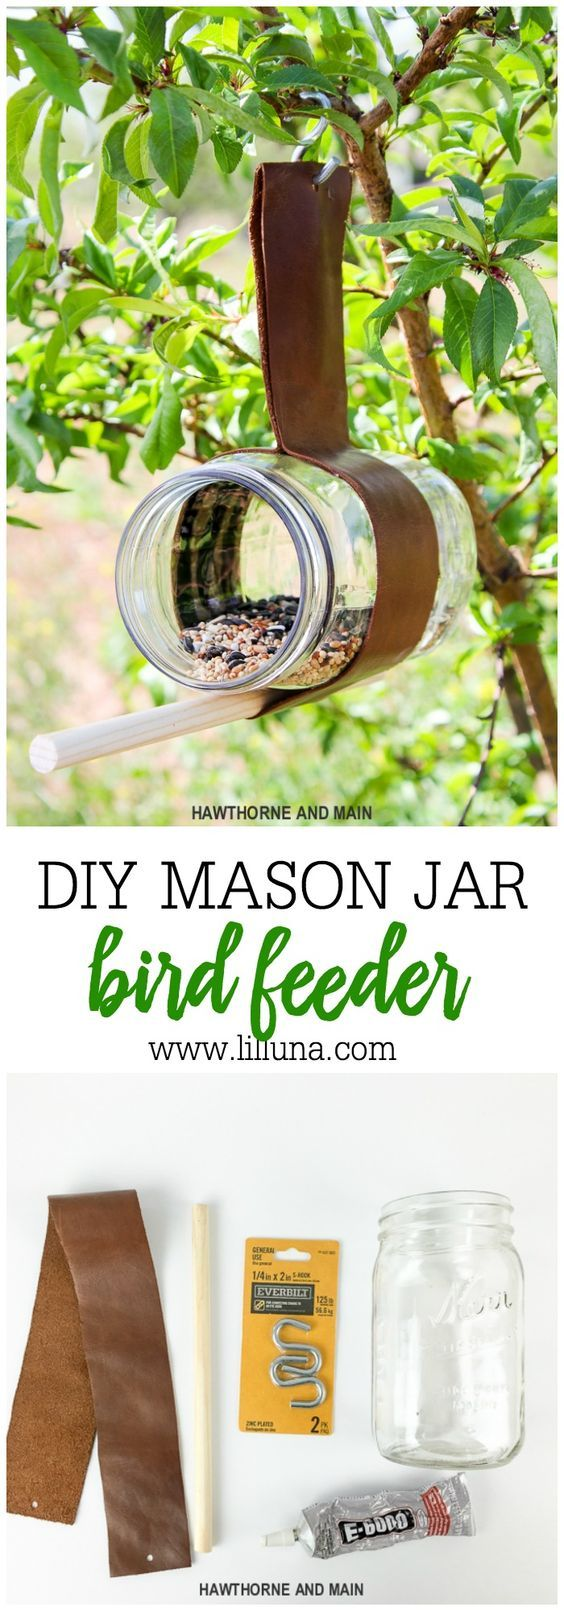 Check out this easy DIY Bird Feeder. What a fun way to get the kids outside and excited about seeing birds. This one looks like a great project!